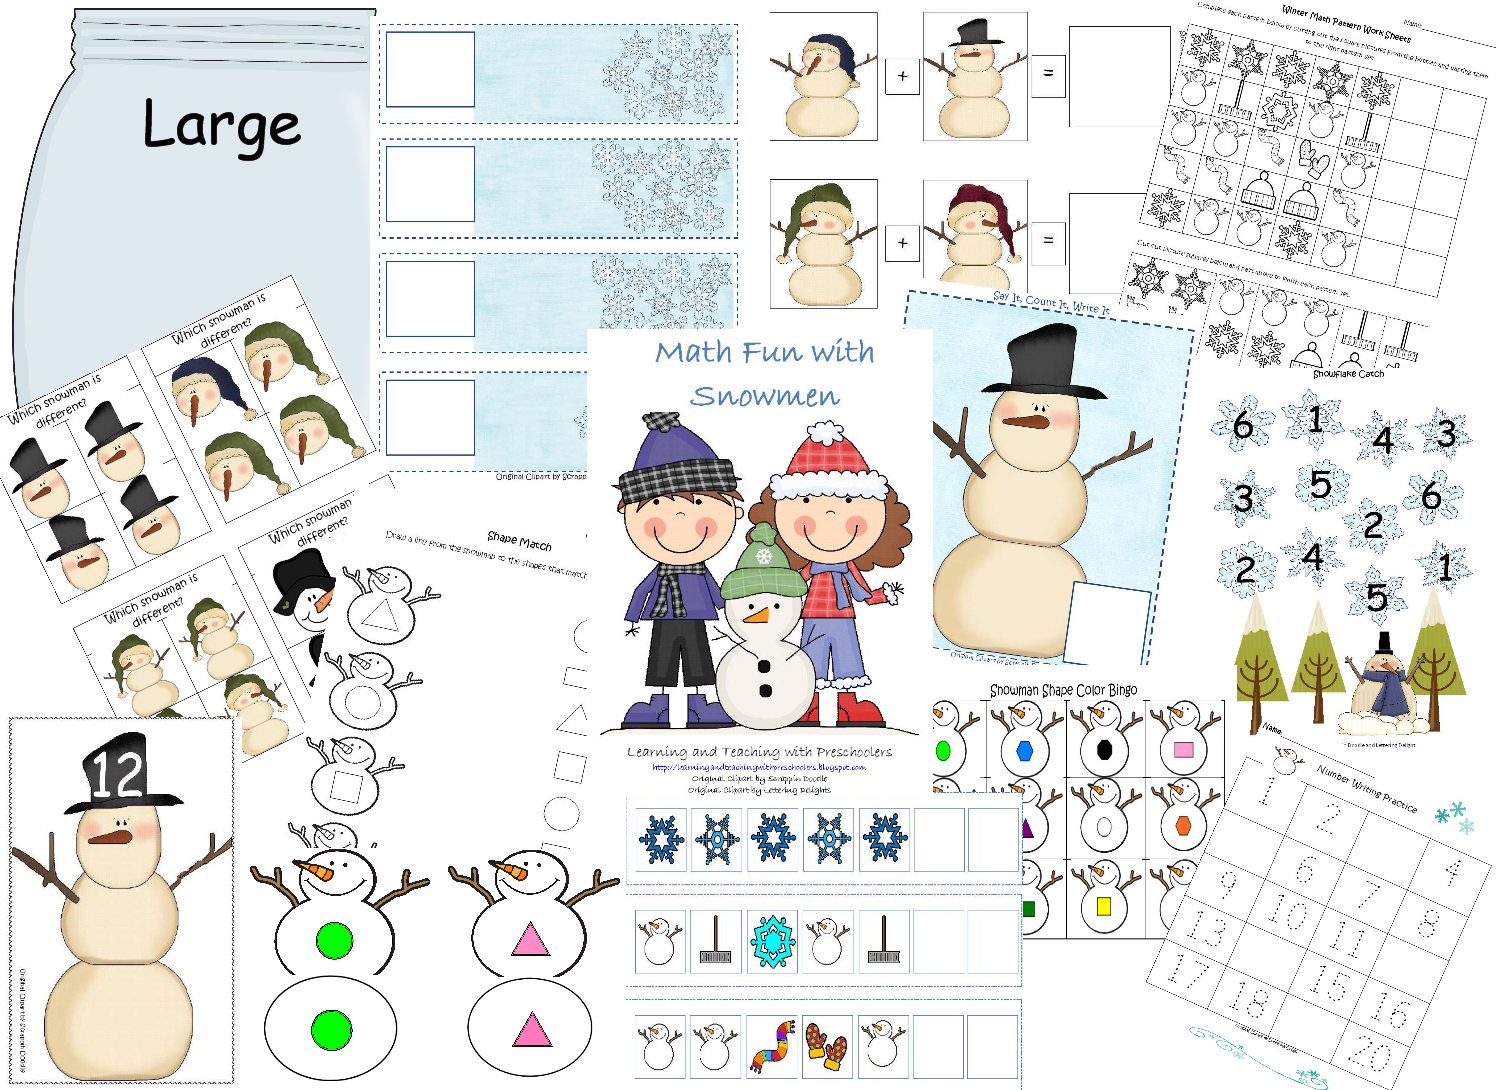 Learning And Teaching With Preschoolers Math Fun With Snowmen